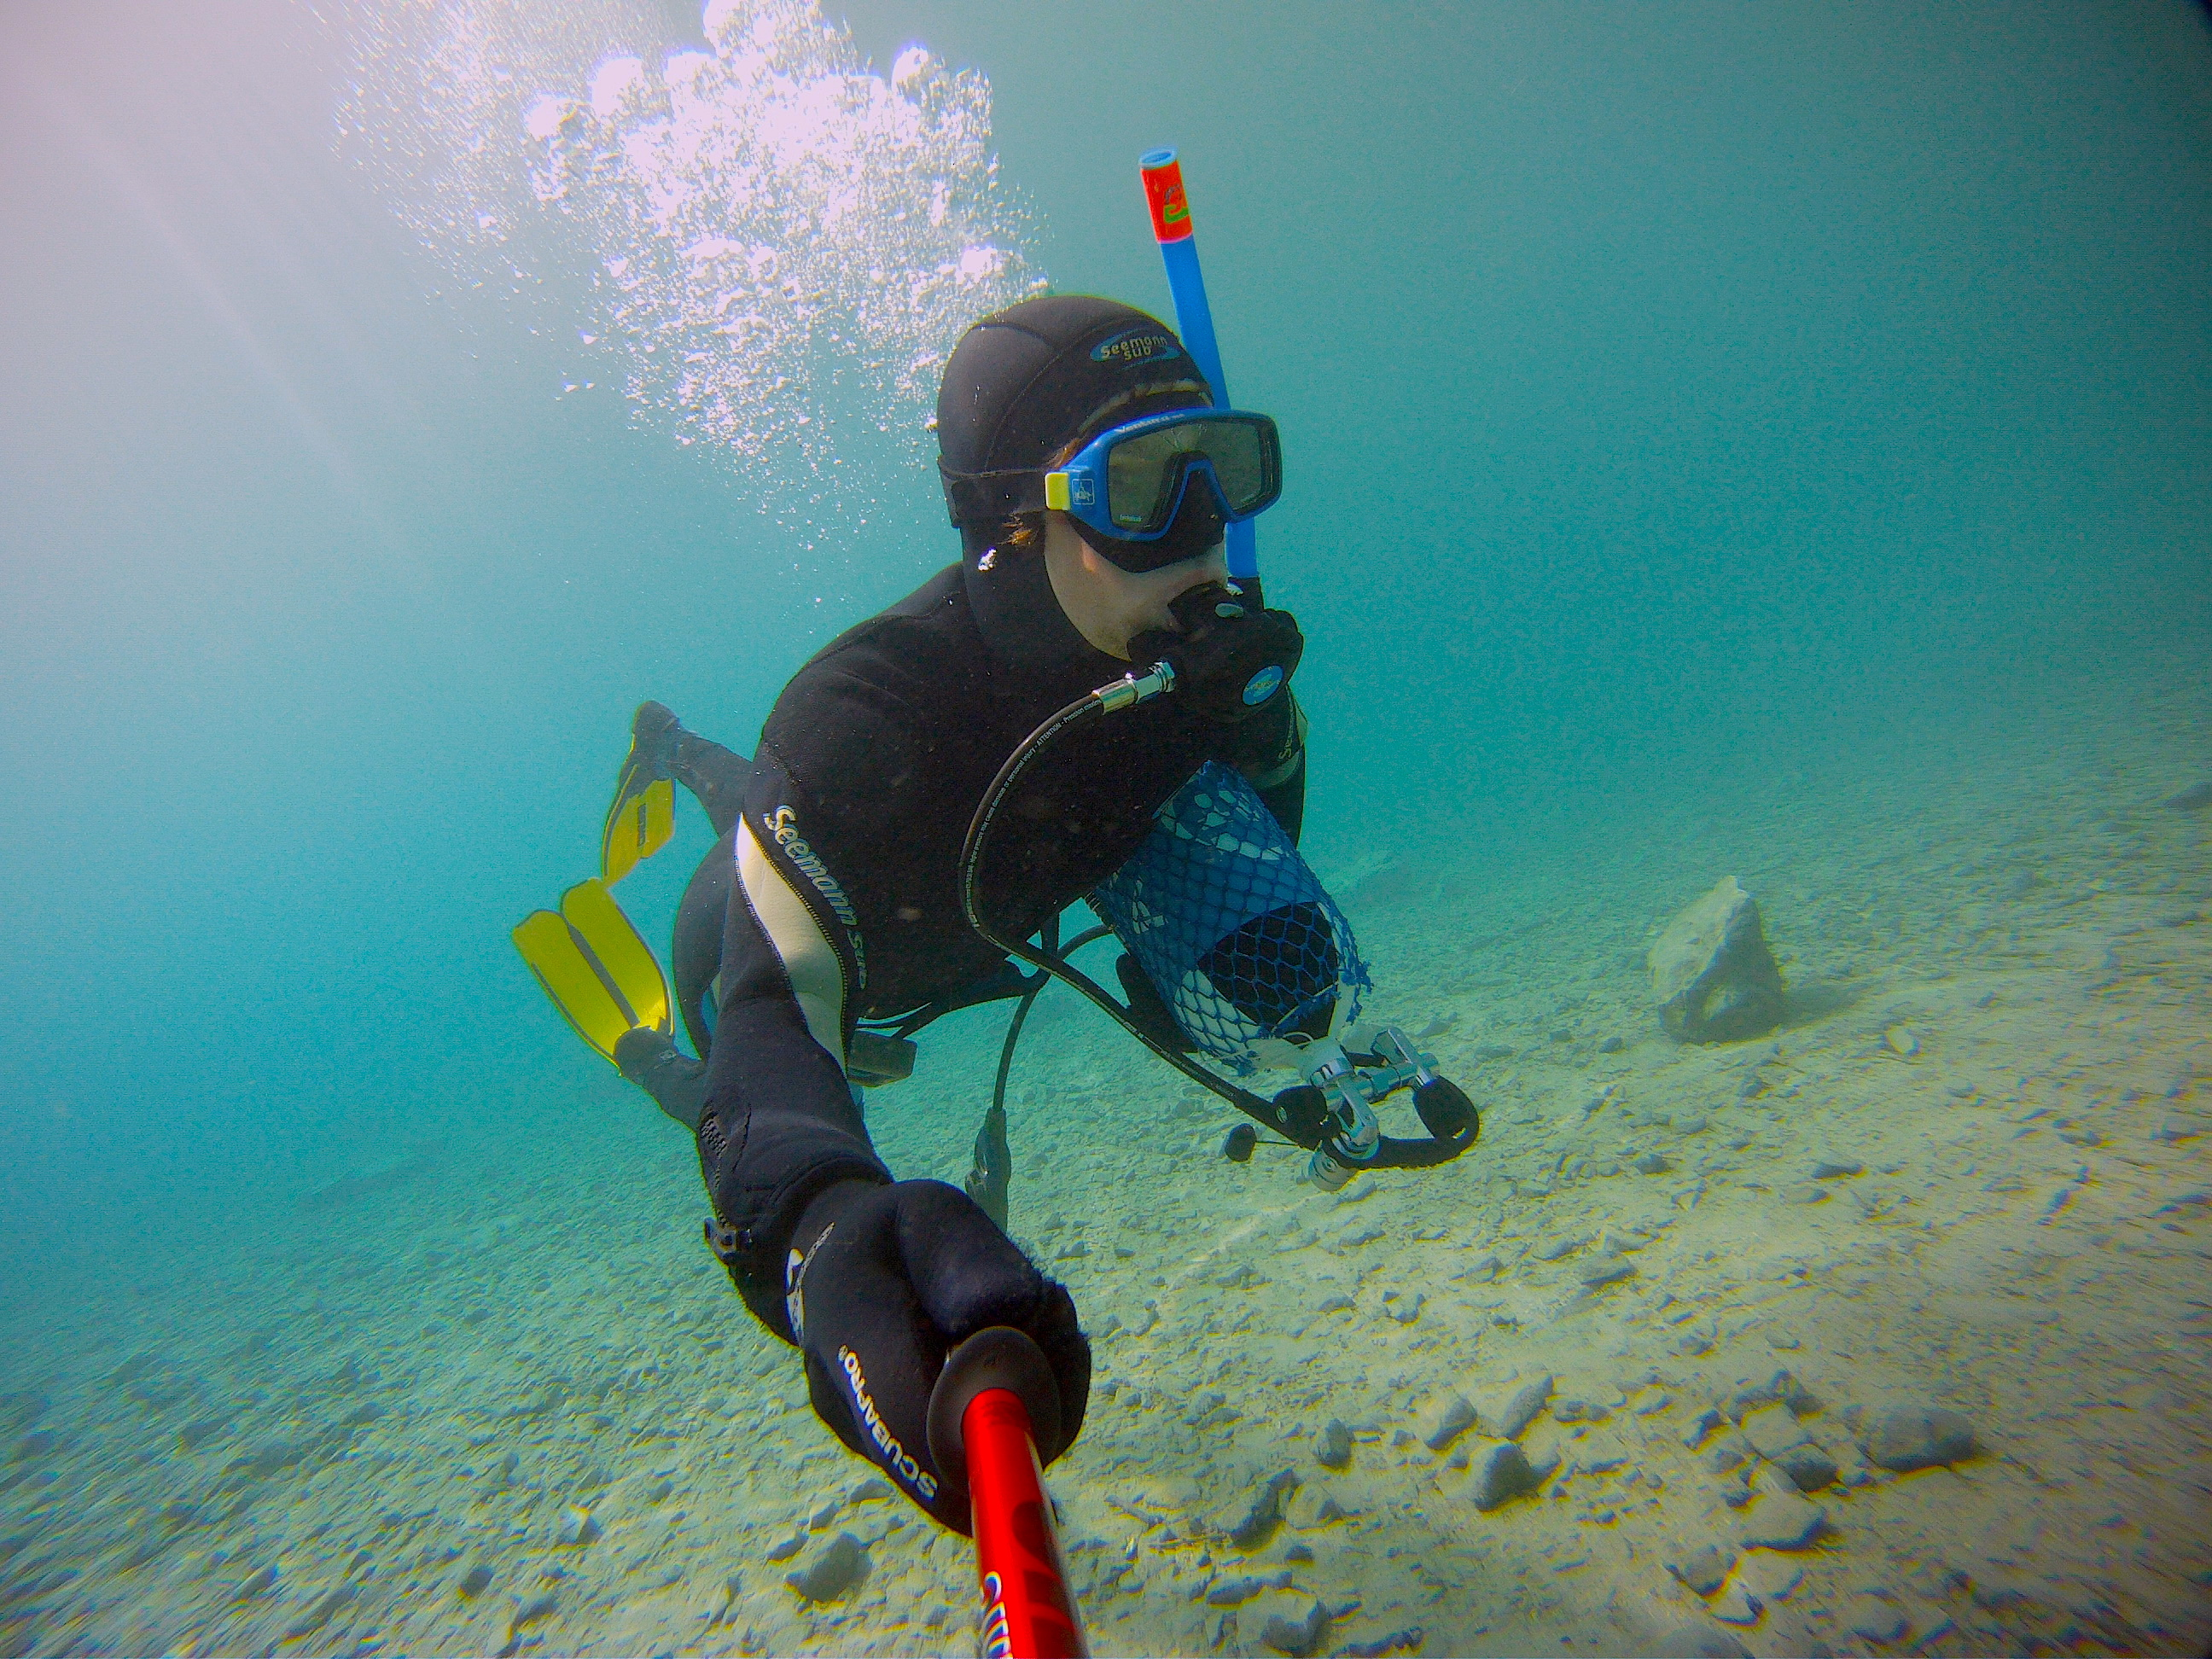 Diving gear in hand, entering the unknown